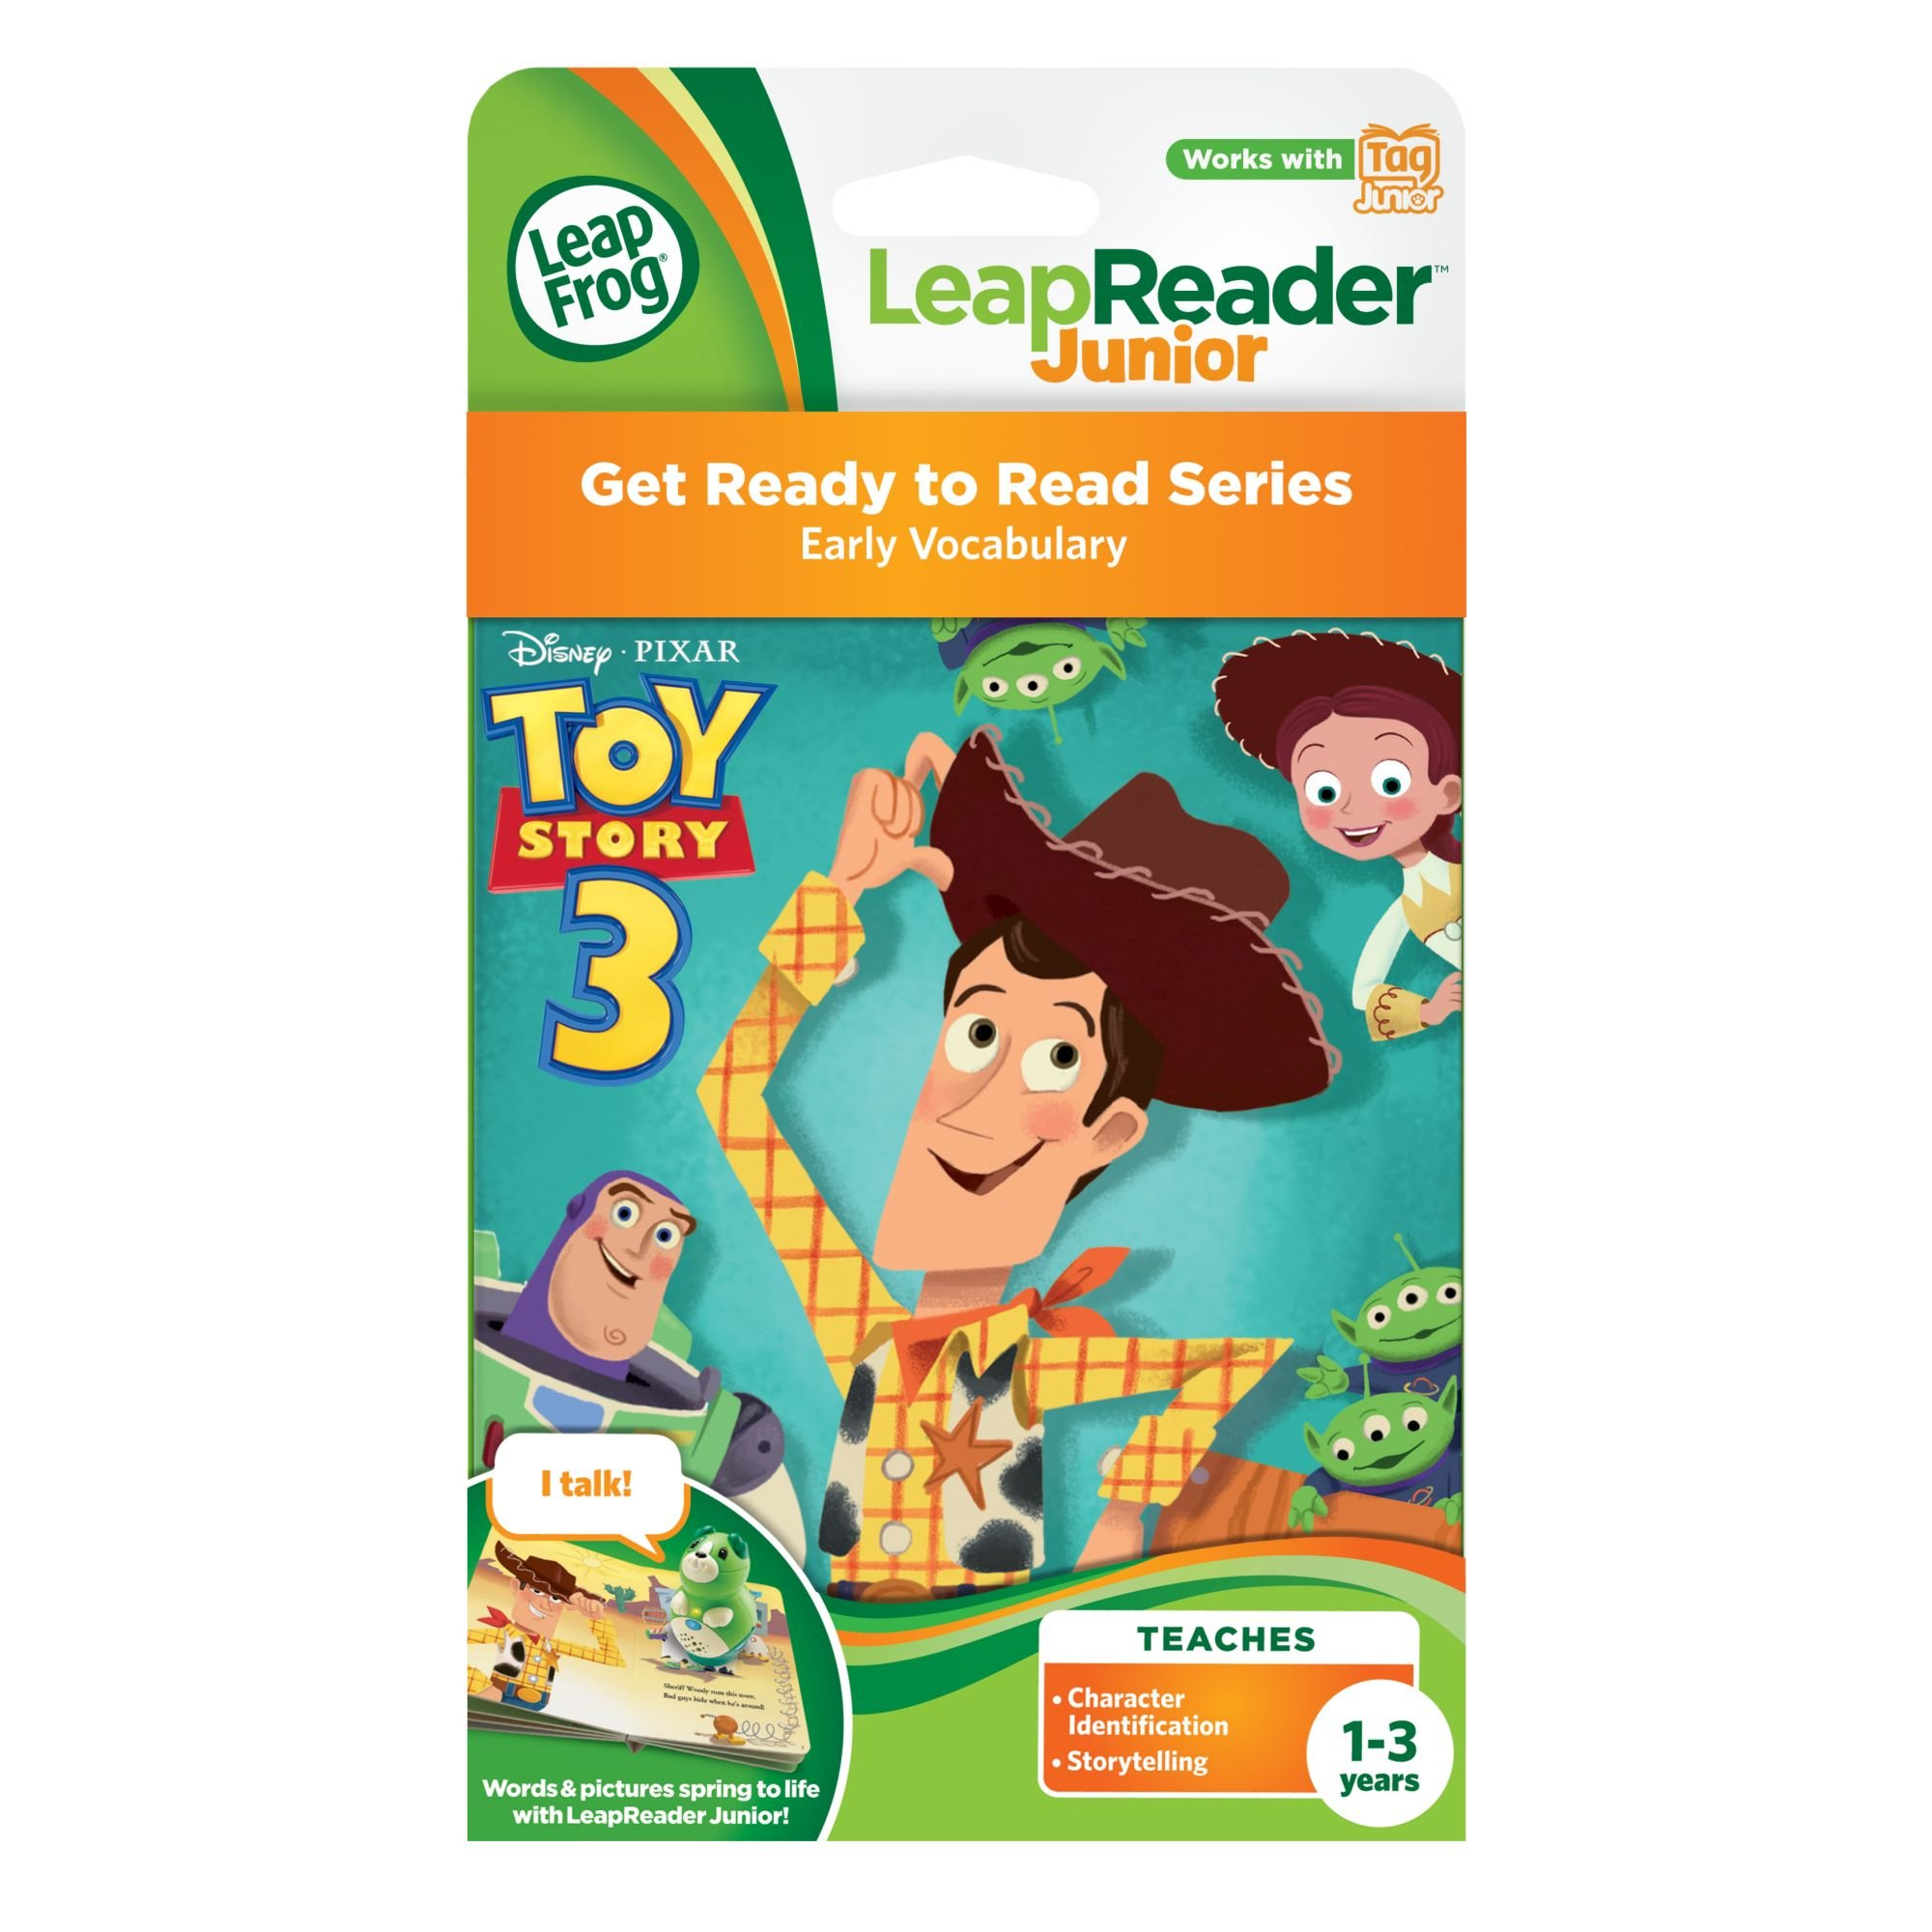 LeapFrog LeapReader Junior Book: DisneyPixar Toy Story 3: To Imagination and Beyond (works with Tag Junior) by LeapFrog (Image #3)